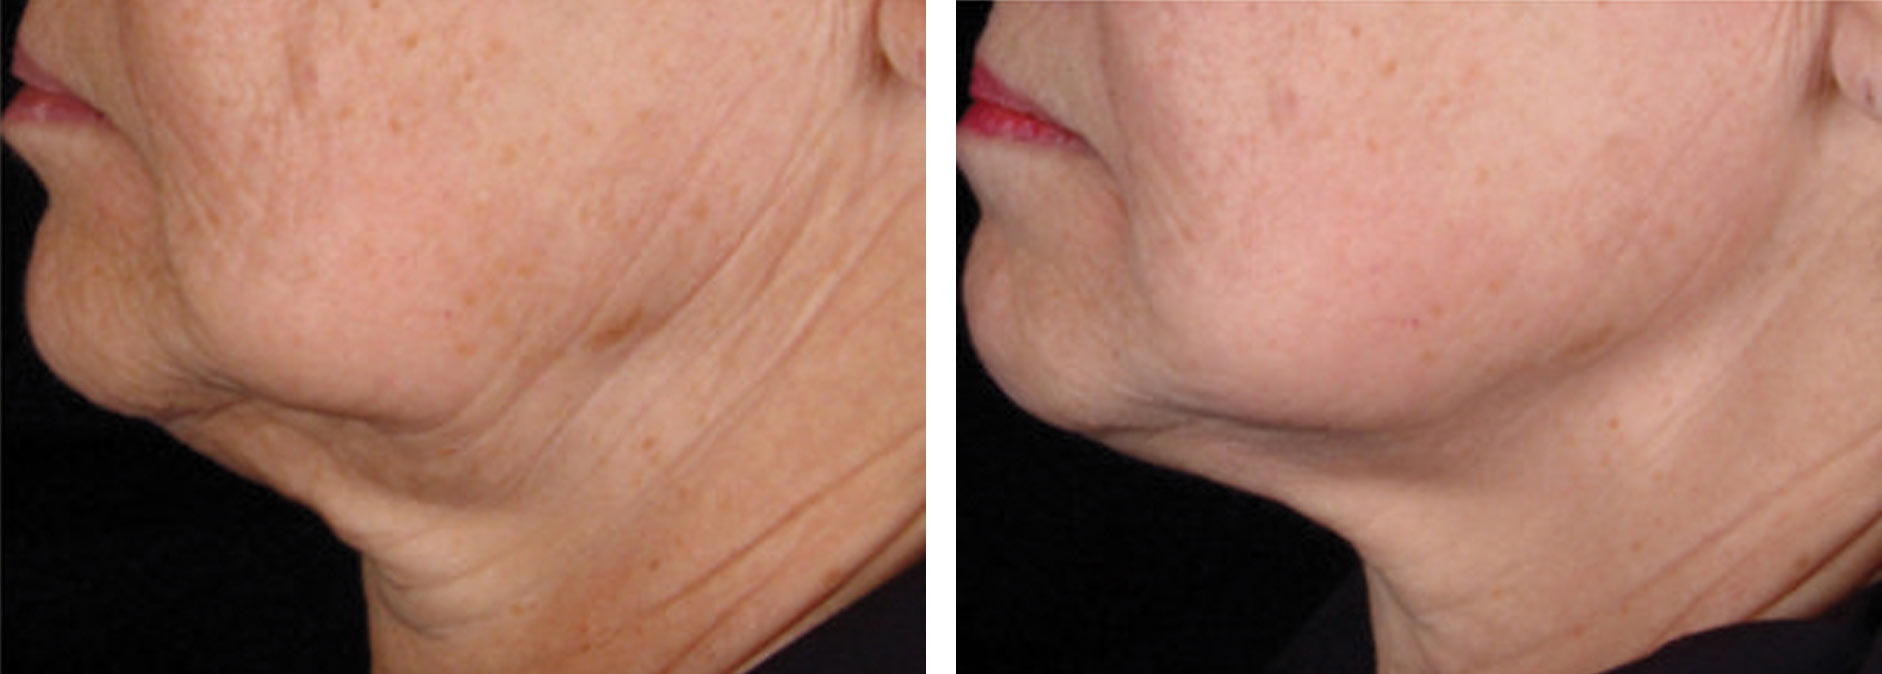 Intensif Microneedling with Radio Frequency Before and After 2